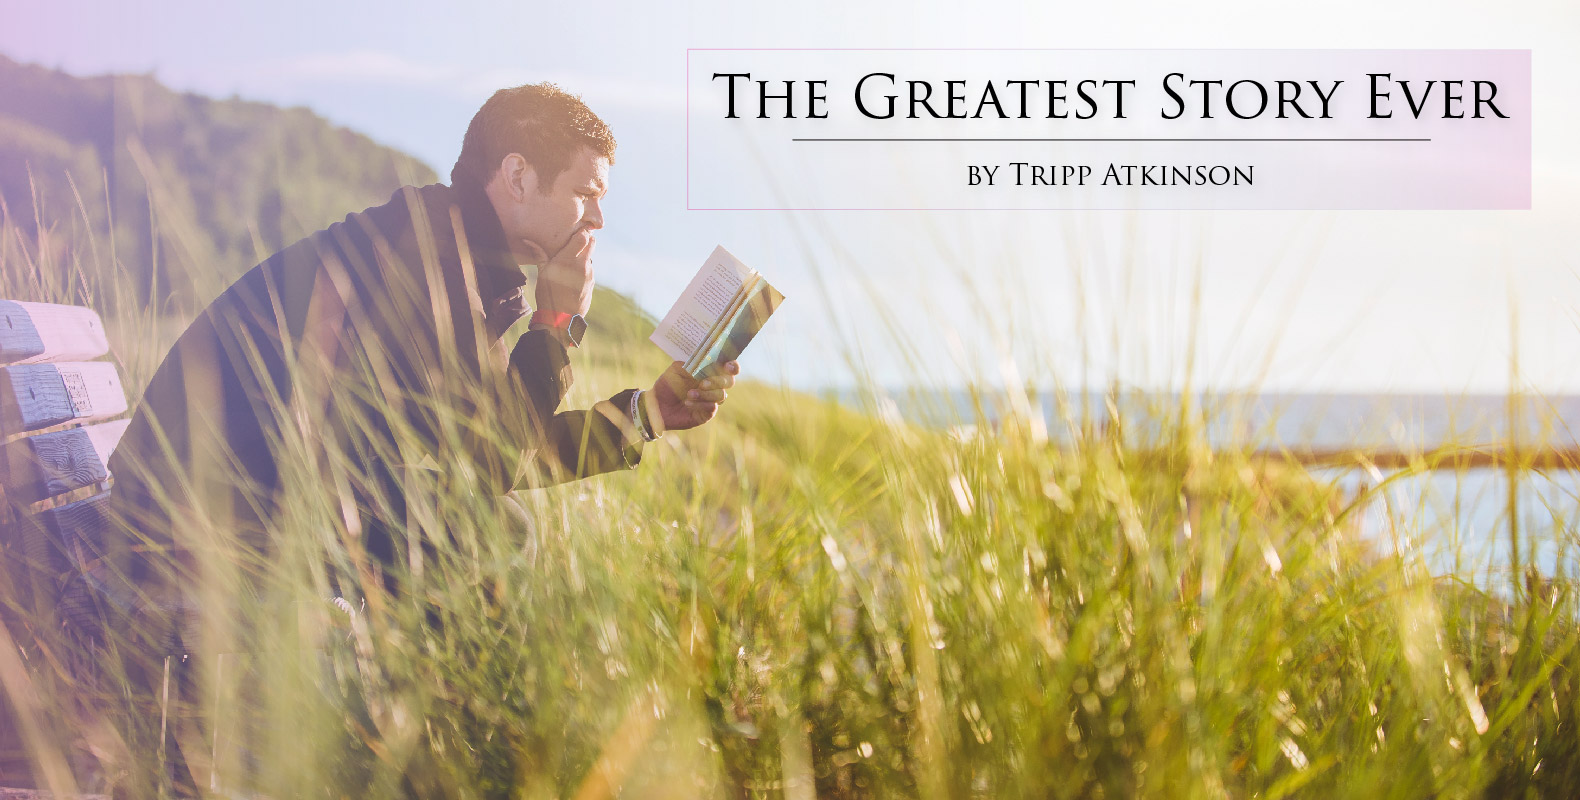 Tripp Atkinson - The Greatest Story Ever